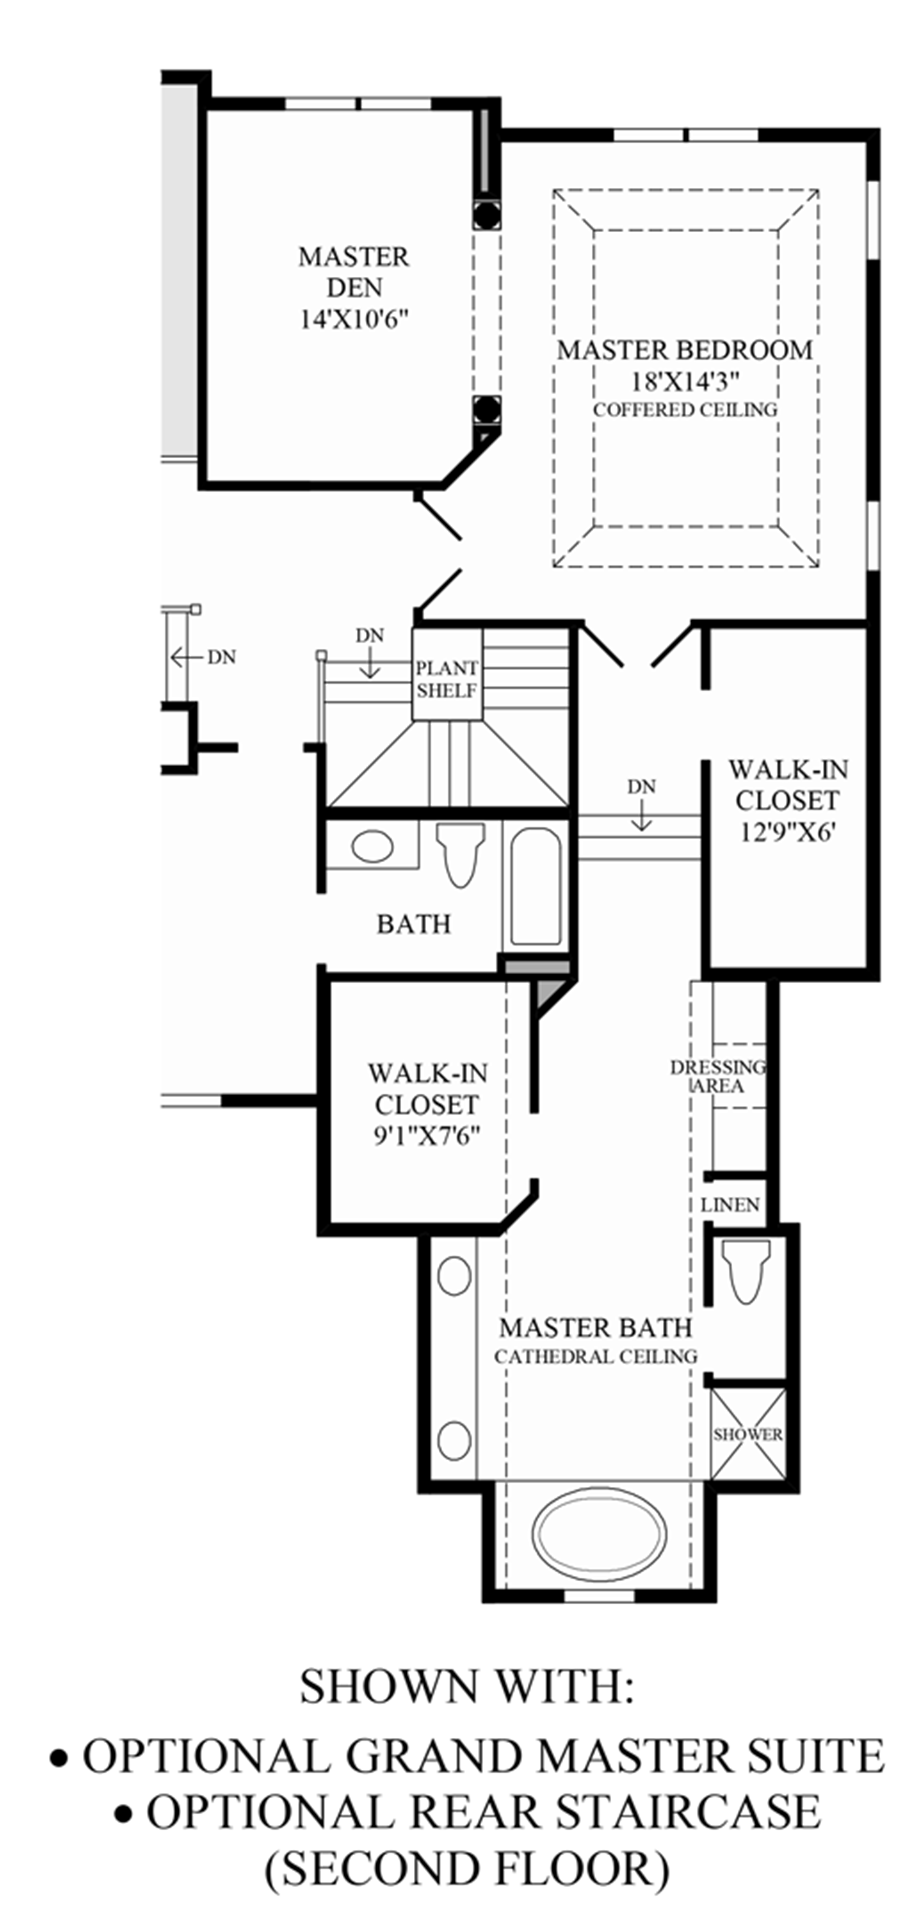 Optional Rear Staircase (2nd Floor) & Grand Master Suite Floor Plan